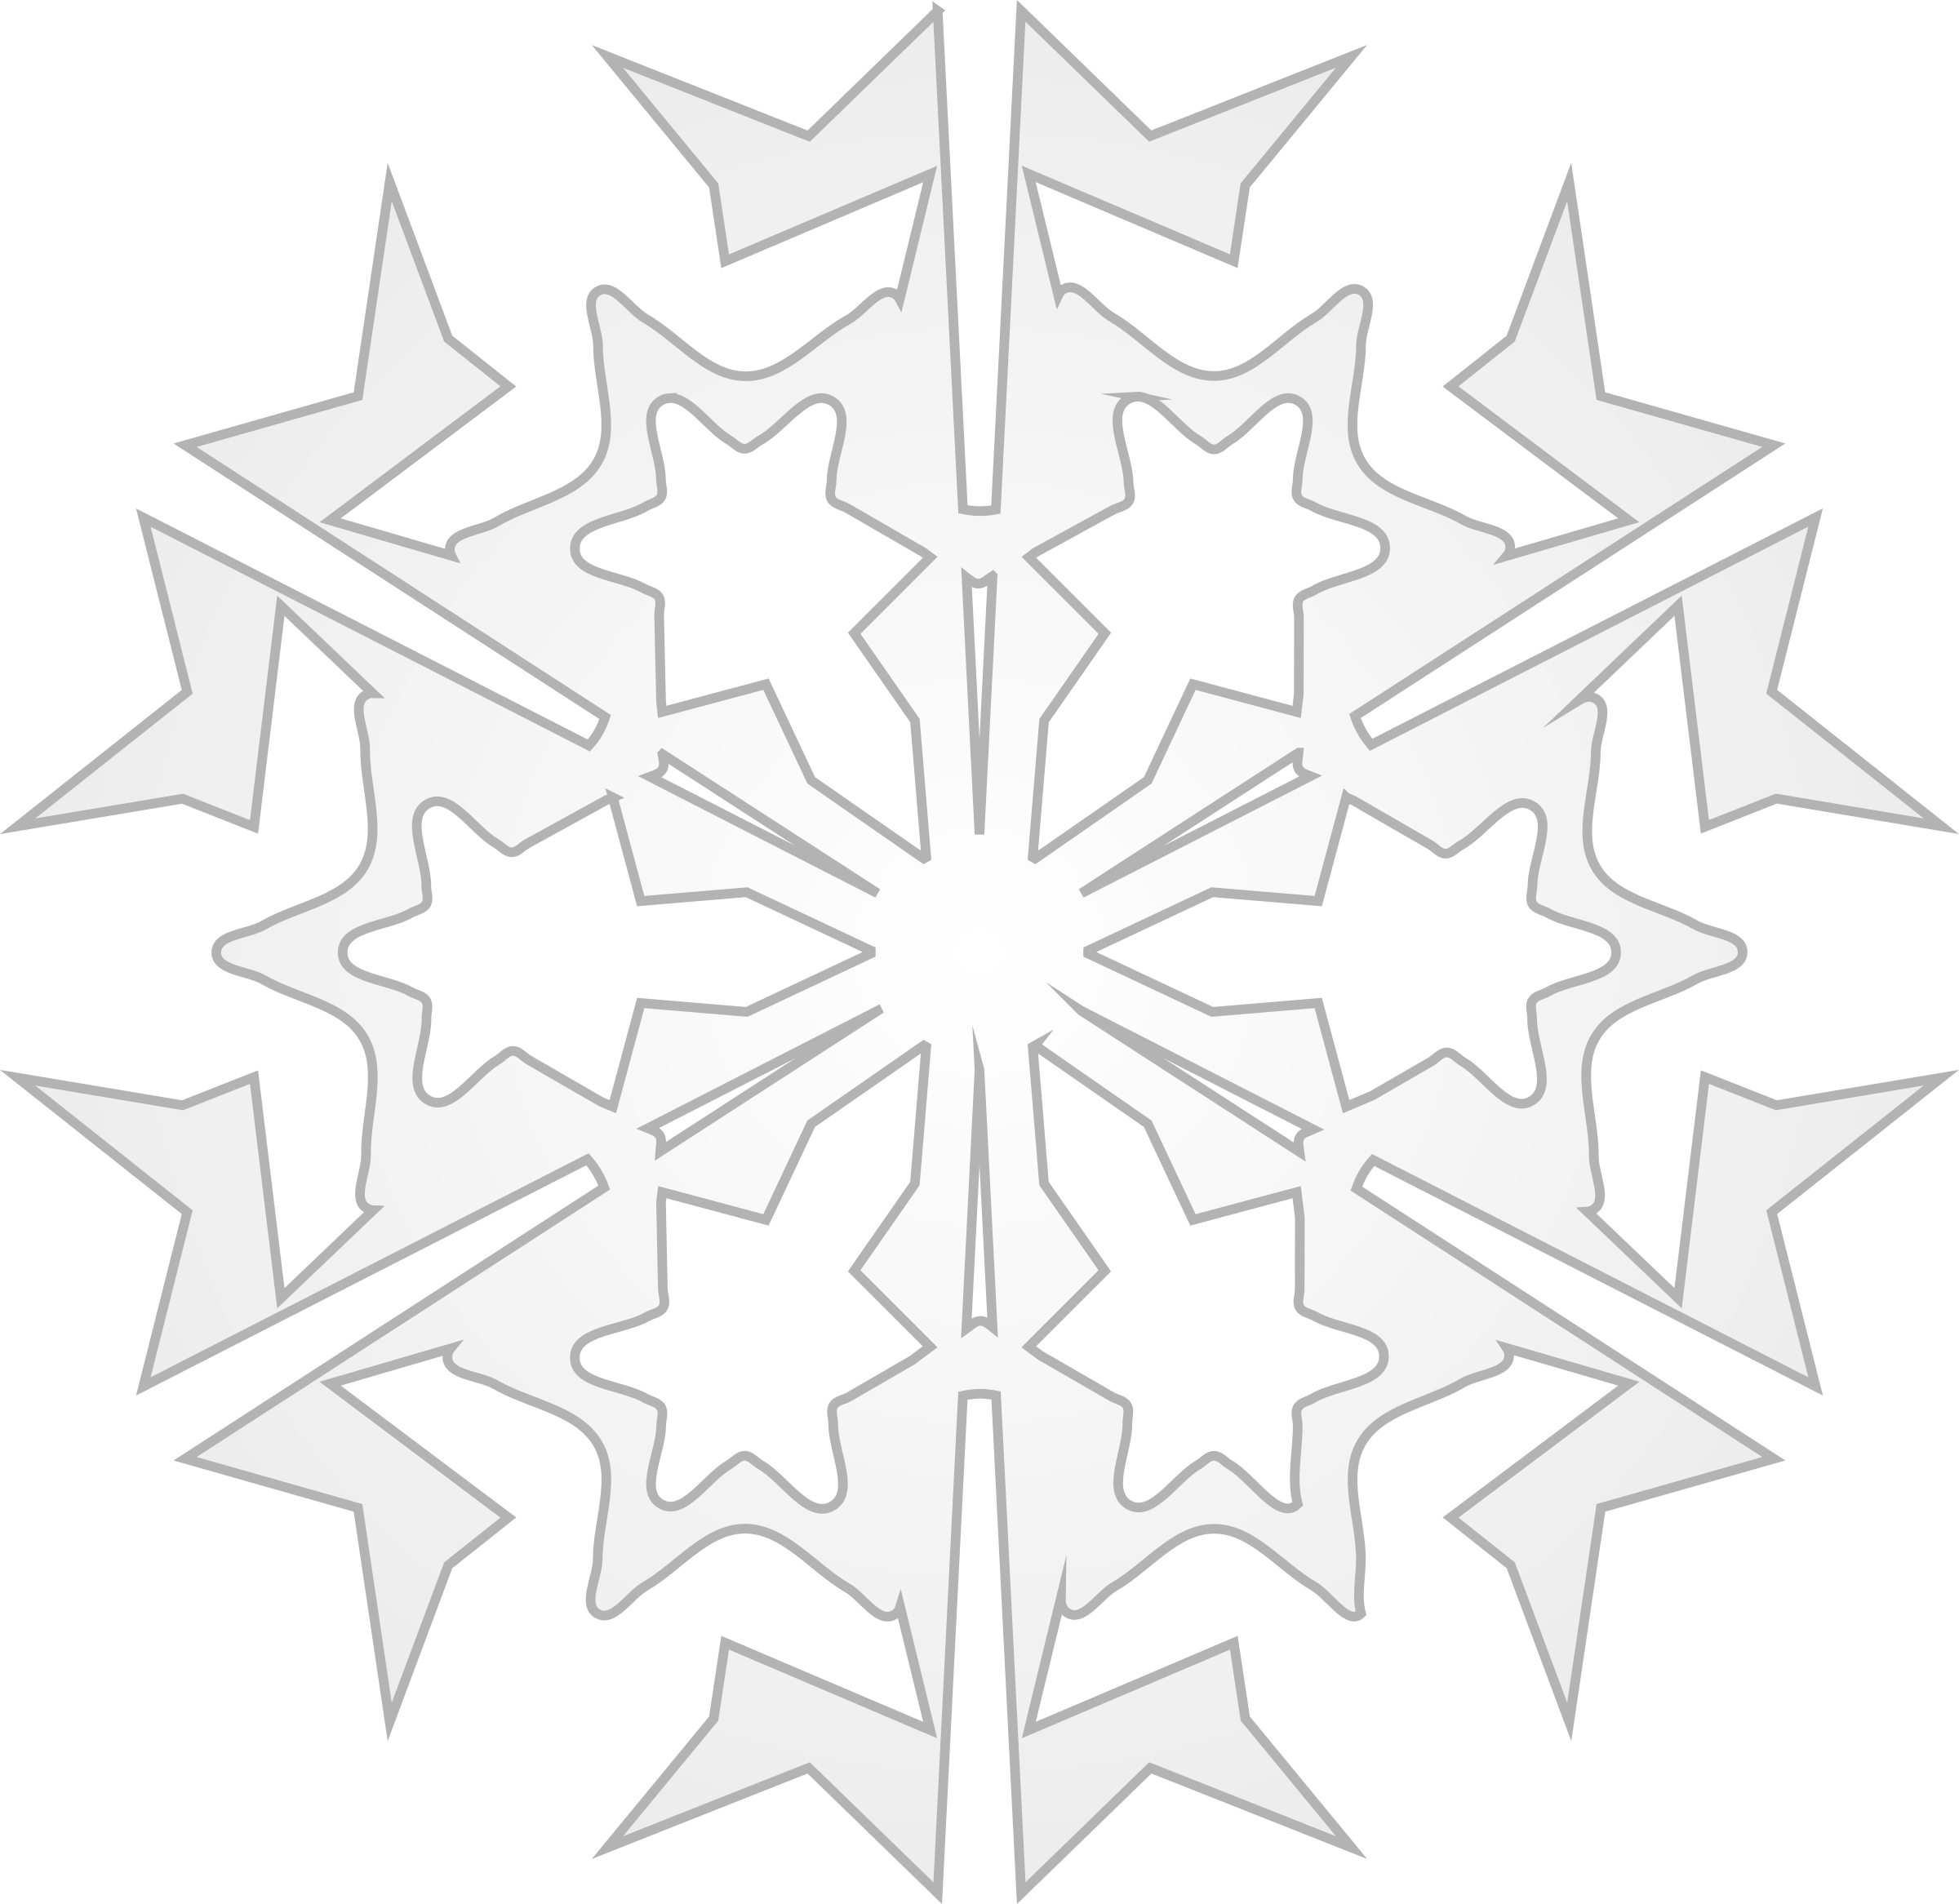 Snowflake 10 by Arvin61r58